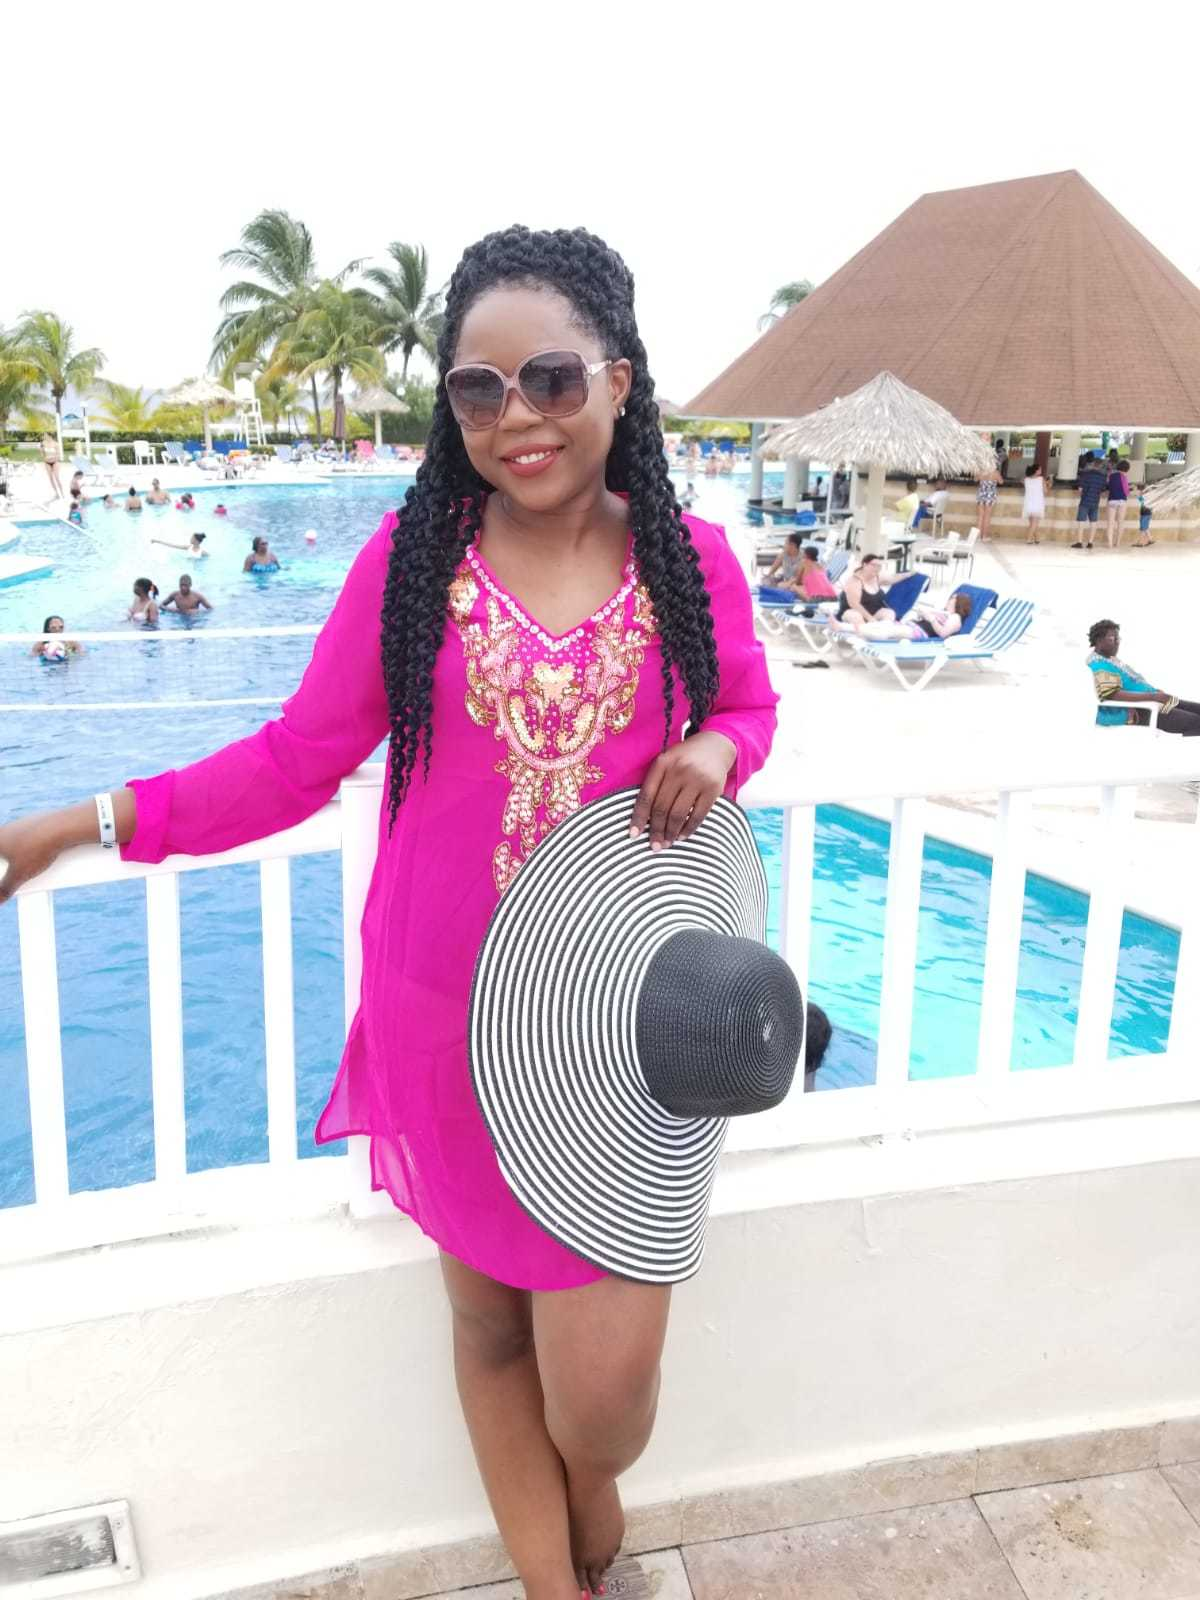 Vacation Style: Straw Hat